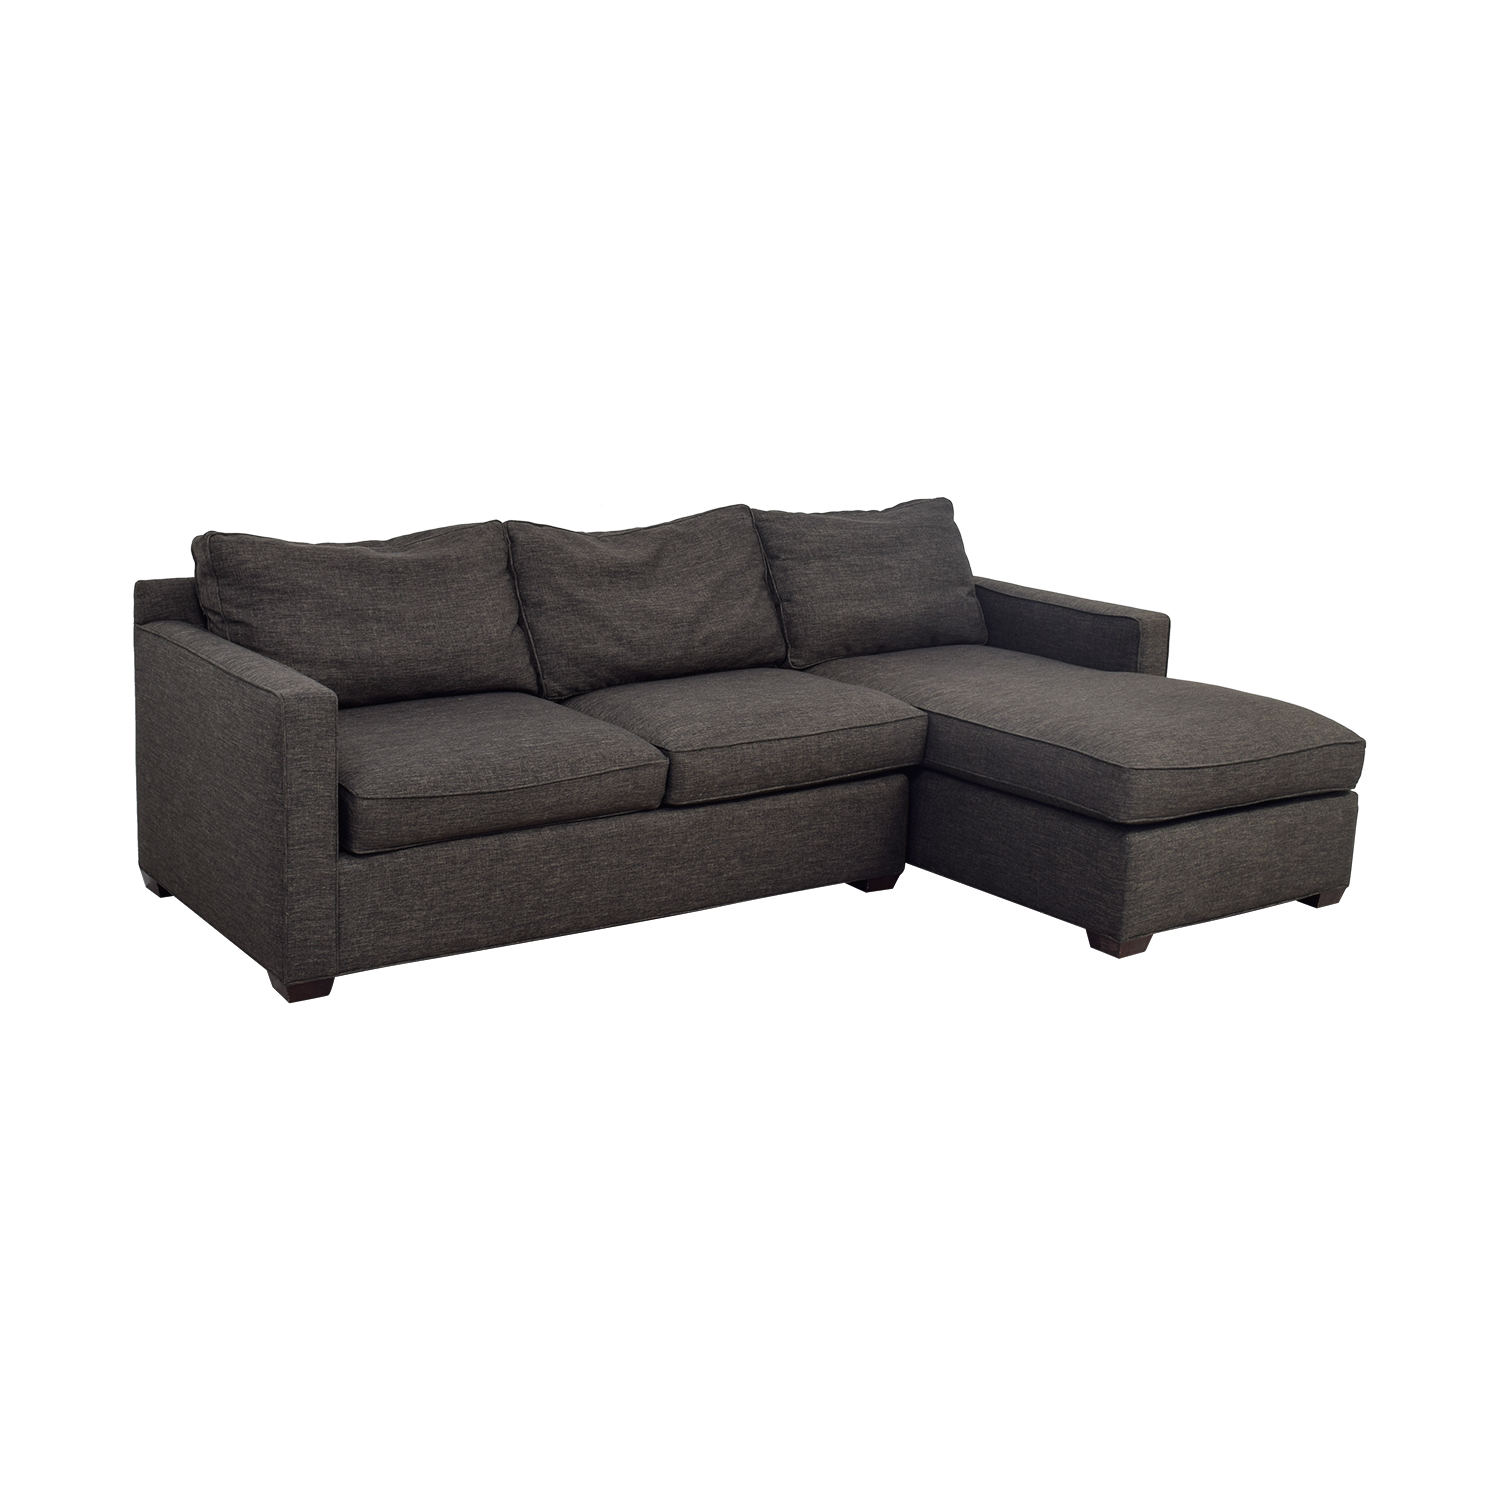 Crate & Barrel Crate & Barrel Davis Sectional discount